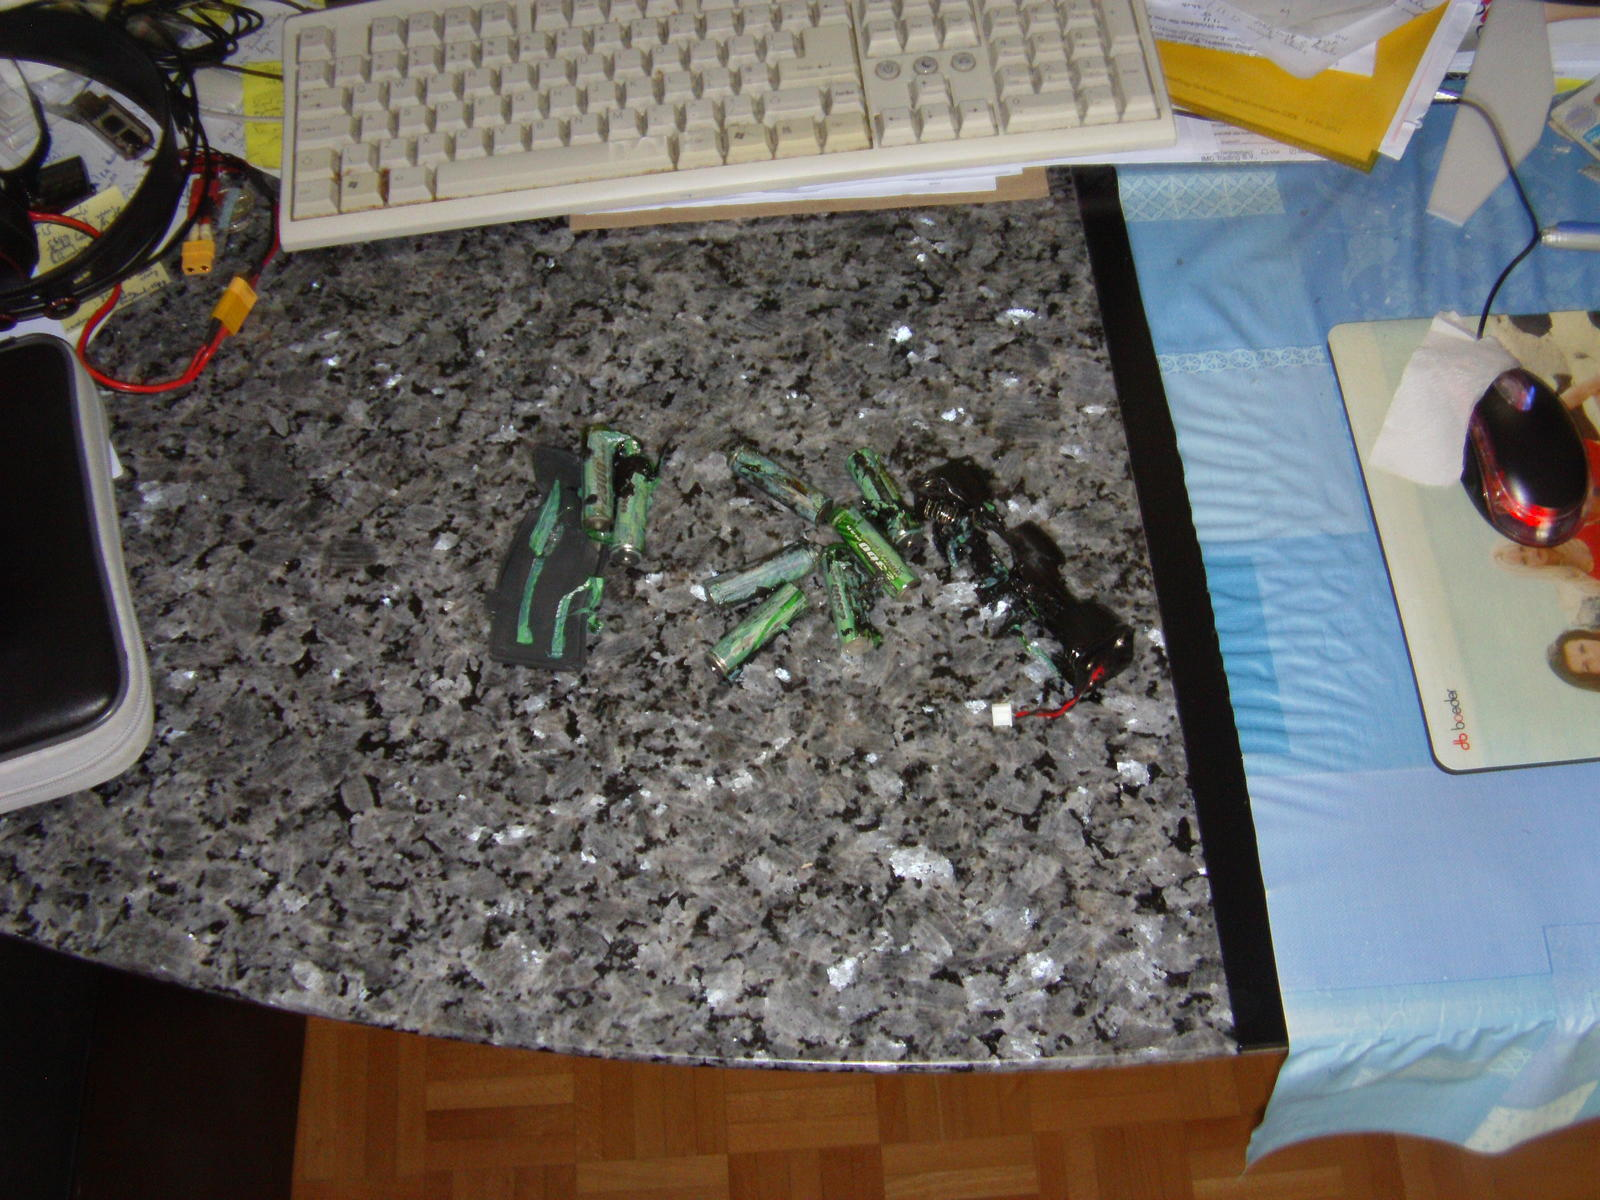 Name: 02_The Melted Batteries, Hatch And Battery Holder.jpg Views: 136 Size: 285.2 KB Description: